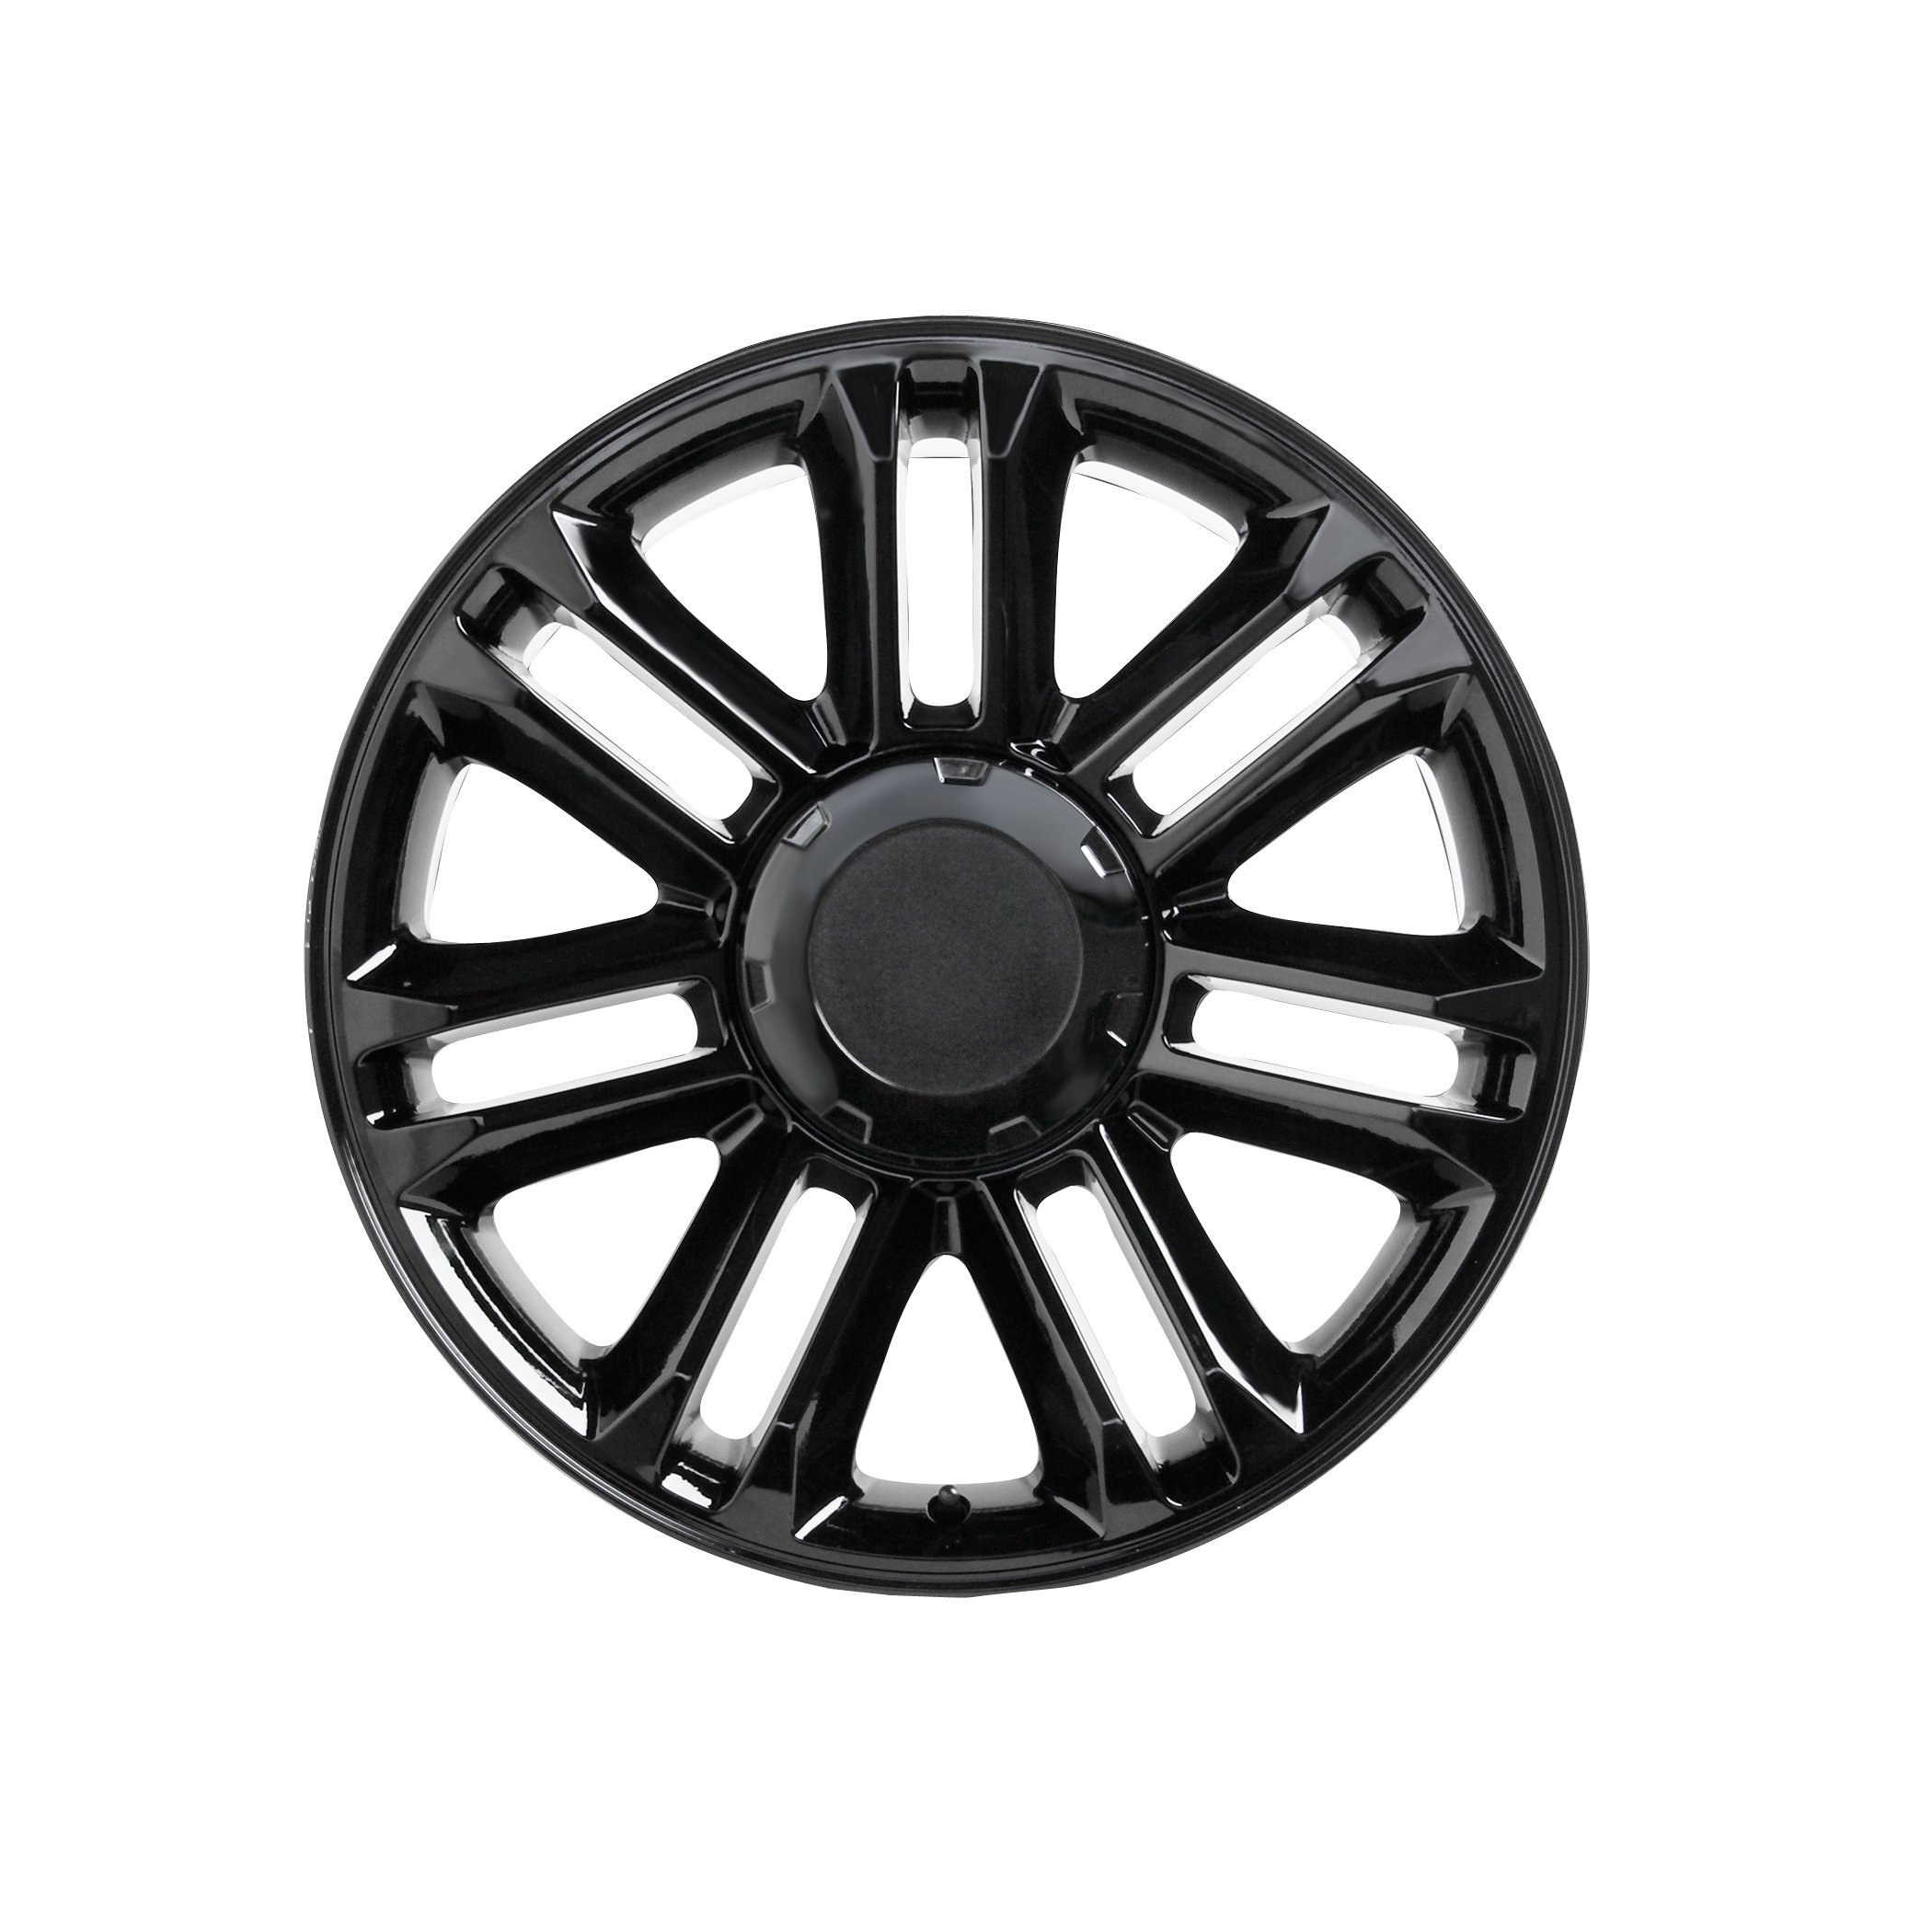 Wheel Replicas V1165 Gloss Black Wheel (22x9''/6x5.5'') by Wheel Replicas (Image #3)